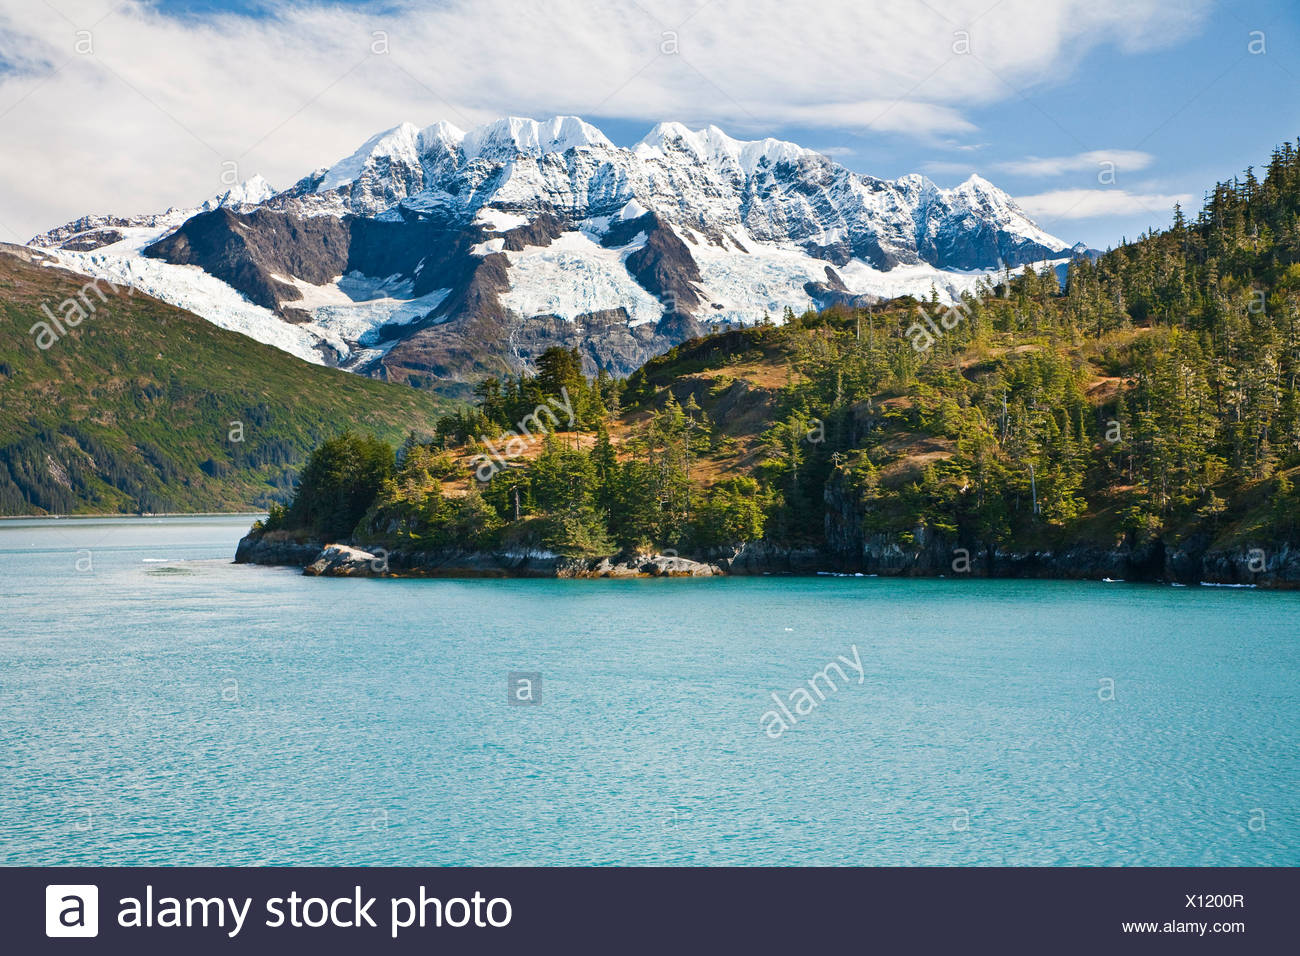 Scenic view of Point Doran and Mt. Muir with glaciers in background, Harriman Fjord, Prince William Sound, Southcentral, Alaska - Stock Image